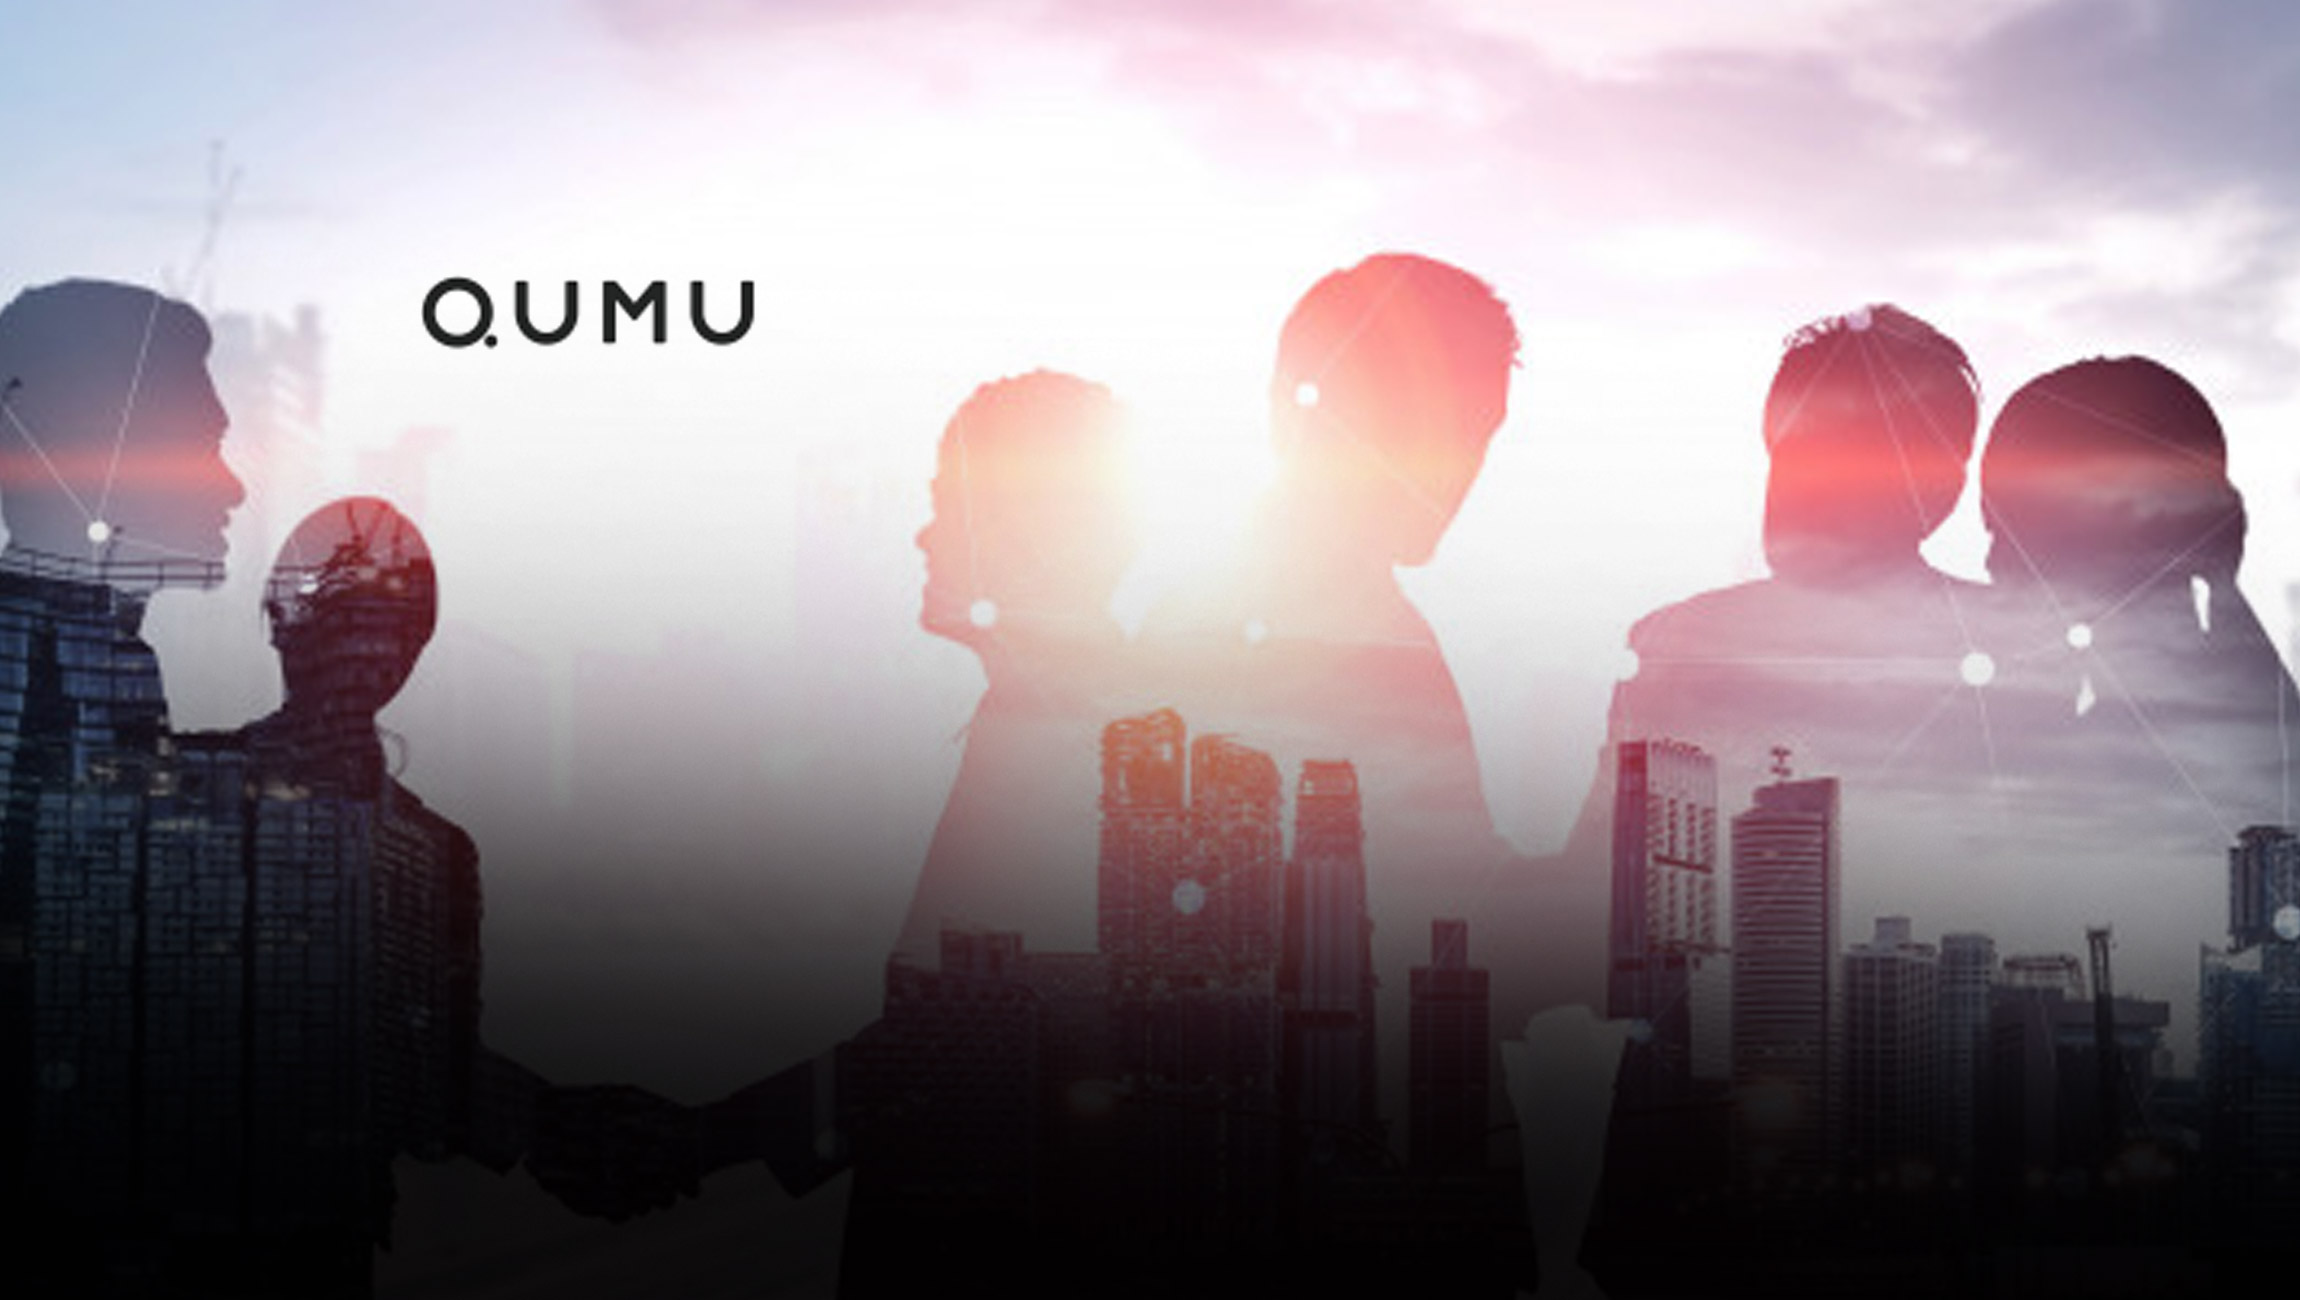 Use of Qumu Cloud Hits Record Levels as Enterprises Continue to Limit Travel, Support Work-at-Home, and Virtualize Events